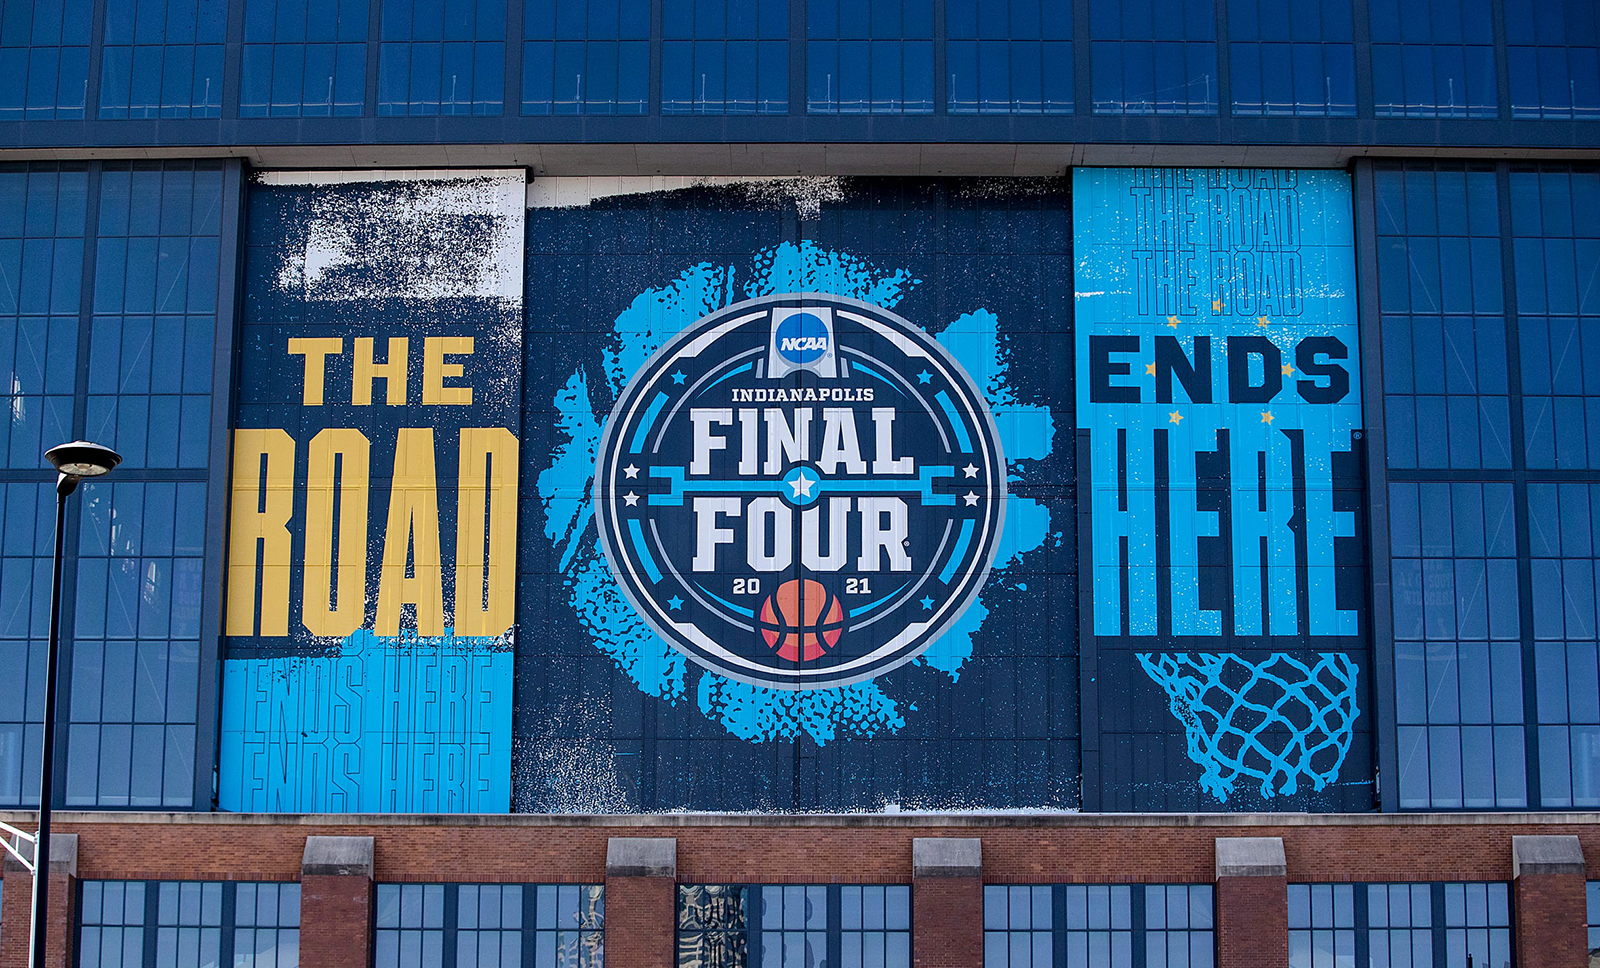 Signs on the side of Lucas Oil Stadium promotes the NCAA Final Four in Indianapolis.